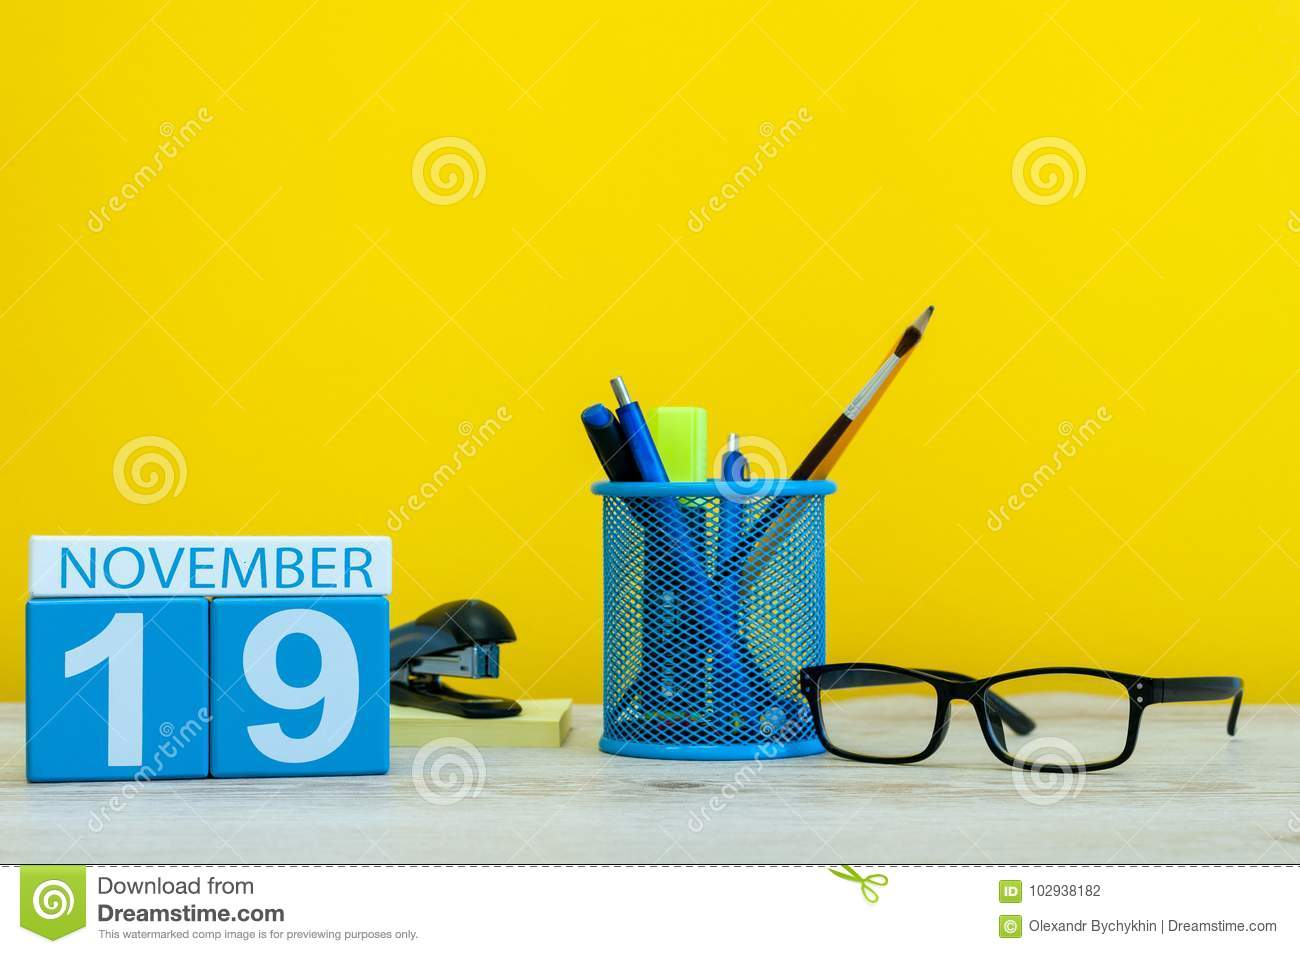 November 19th Day 19 Of Month Wooden Color Calendar On Yellow Background With Office Supplies Autumn Time